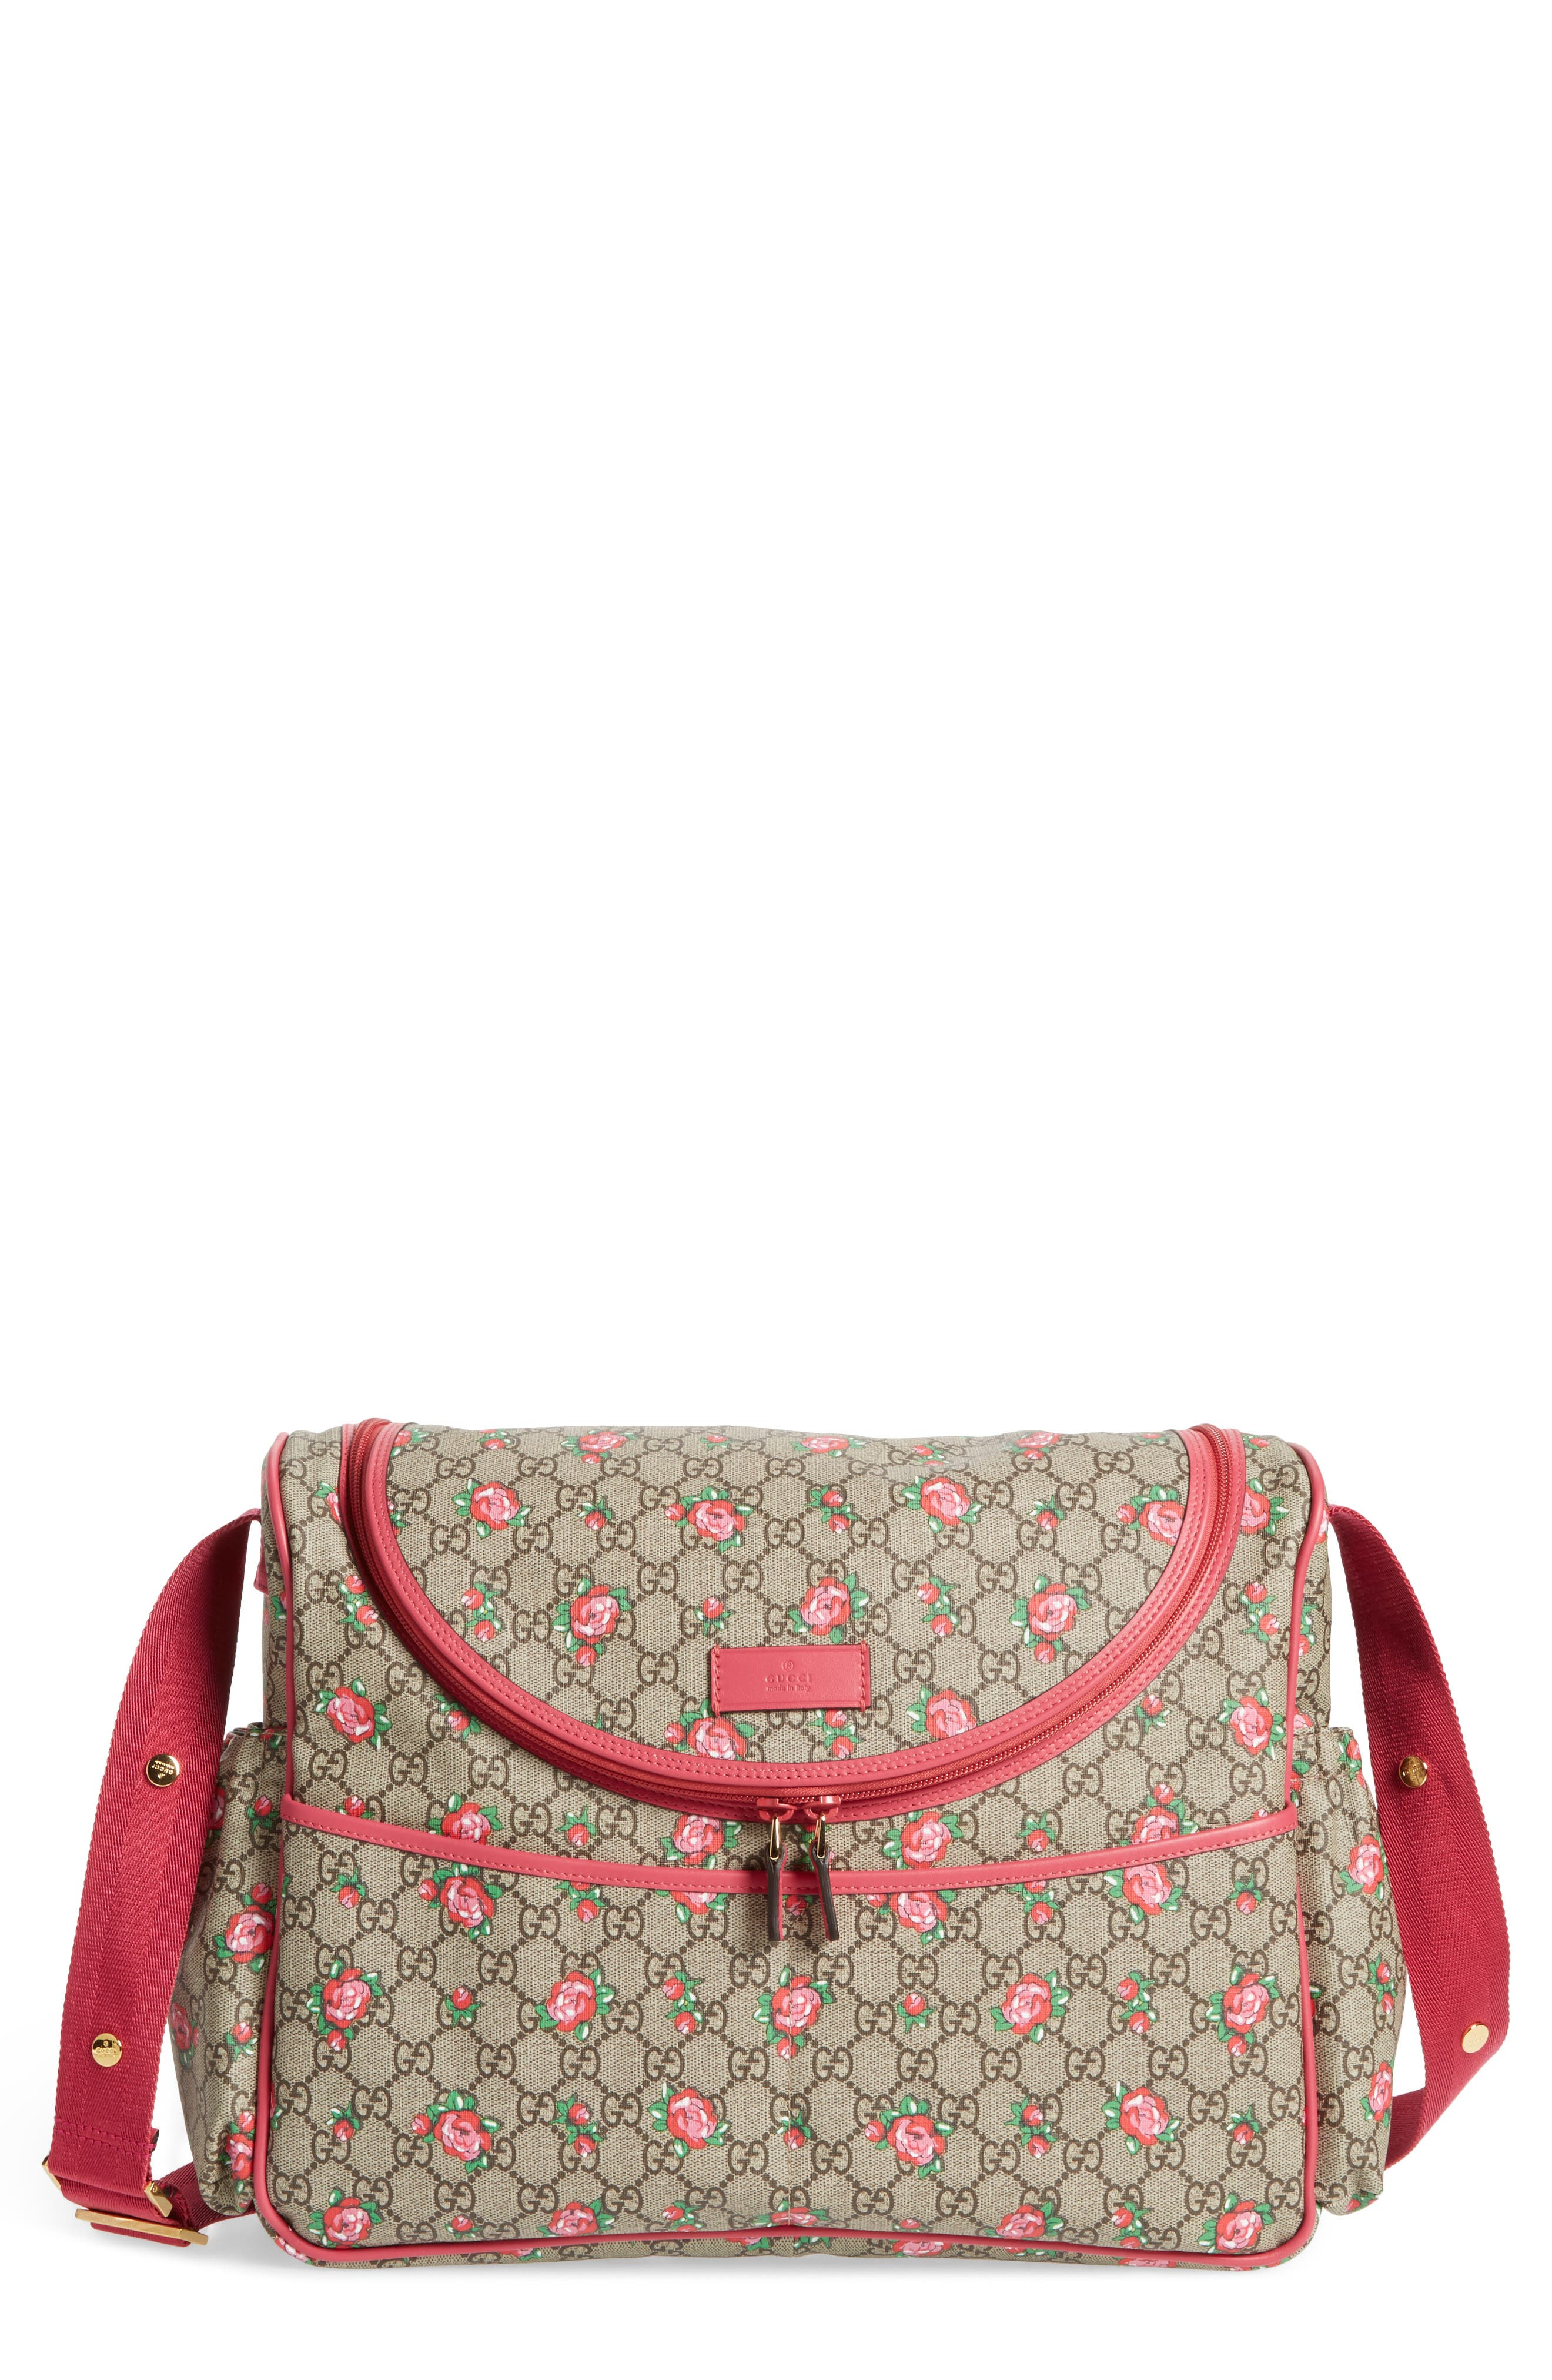 Gucci Rose Bud GG Supreme Diaper Bag